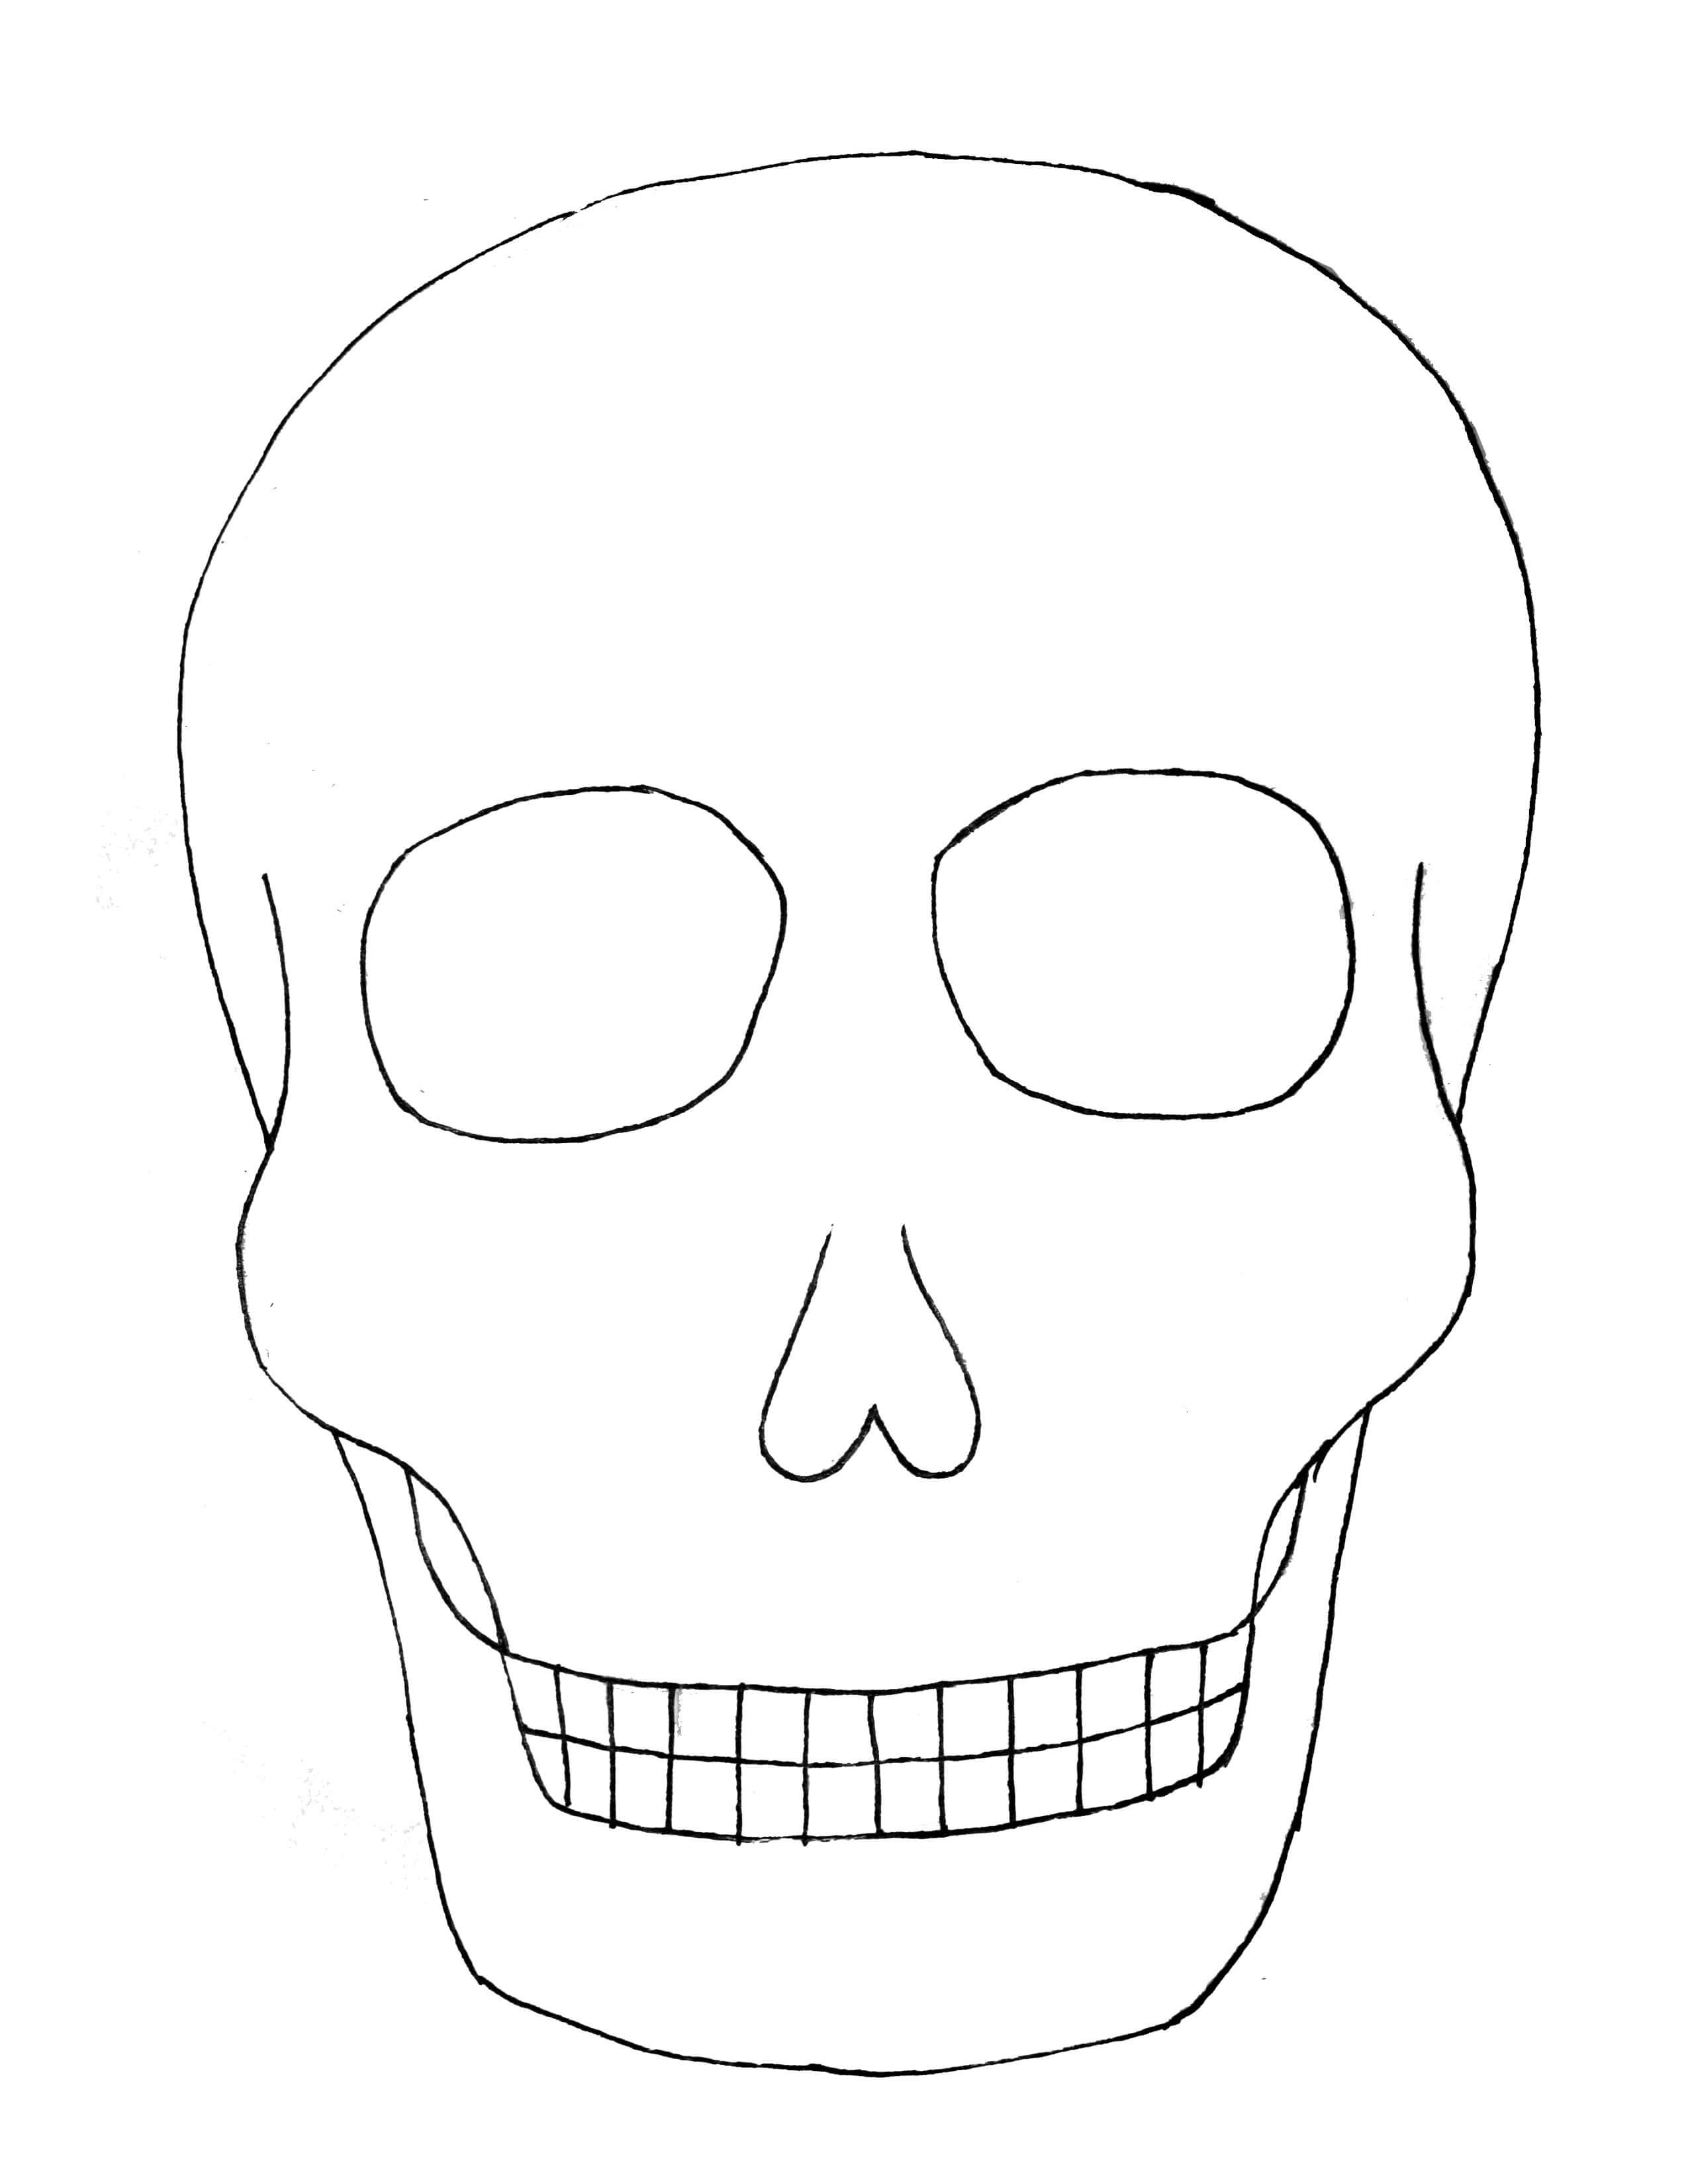 27 Images Of Sugar Skull Template Printable Blank | Unemeuf Pertaining To Blank Sugar Skull Template